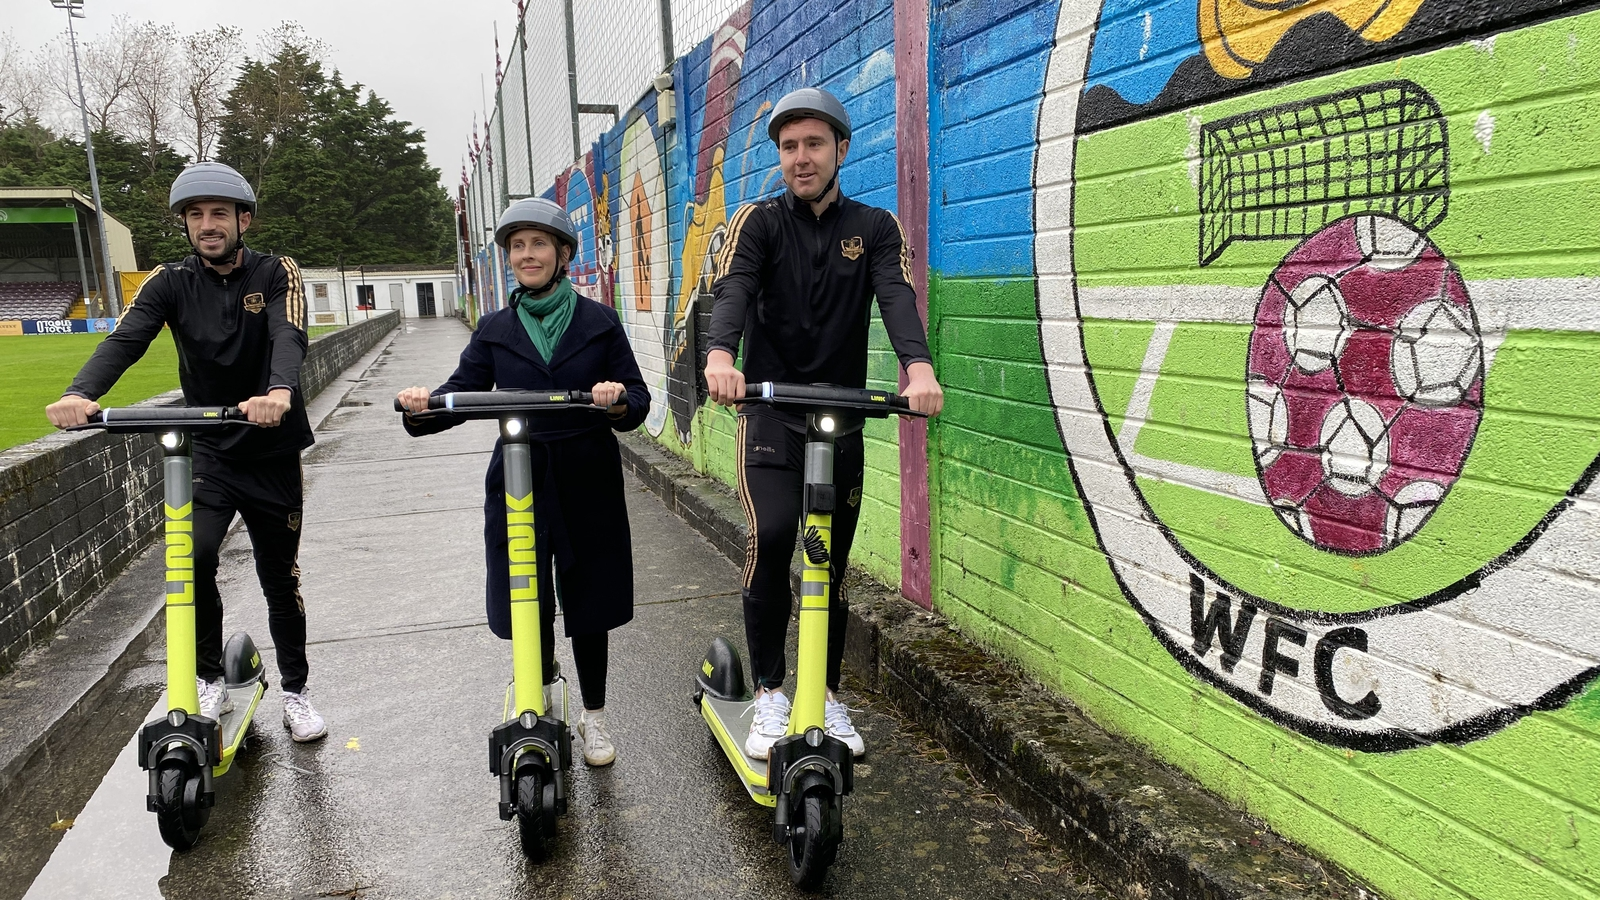 E-scooters: A transport solution or safety menace?